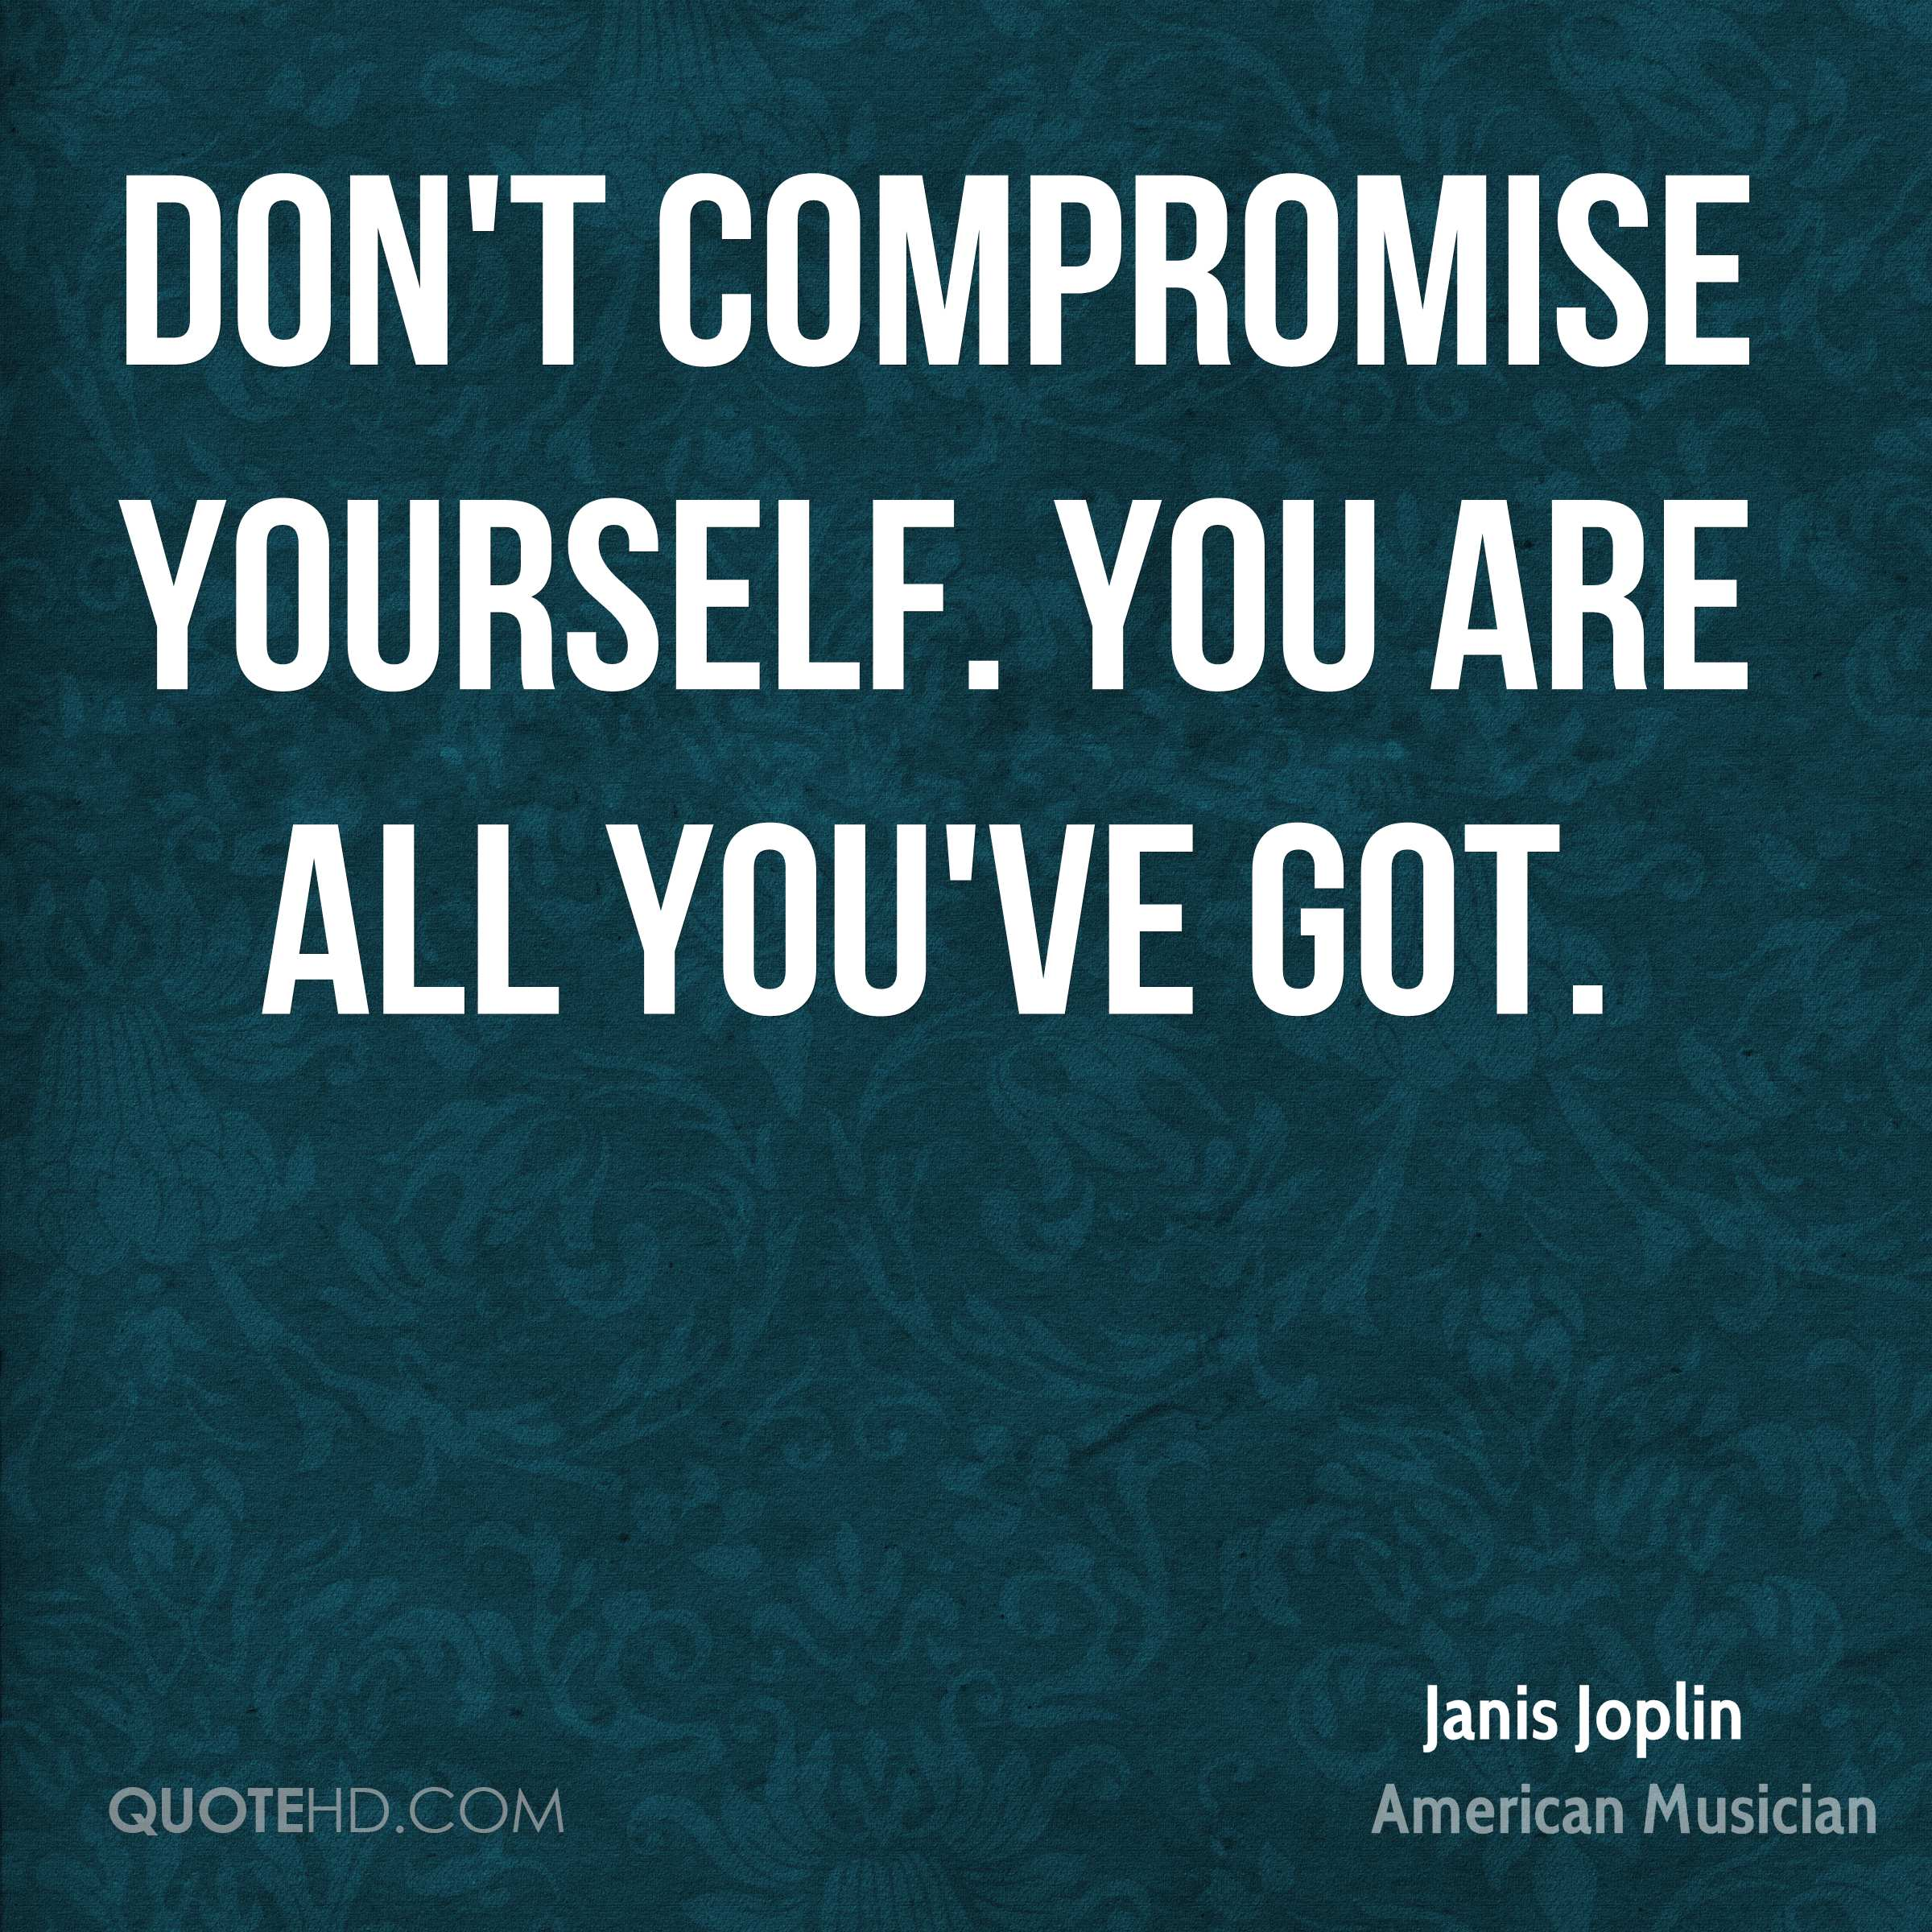 Don't compromise yourself. You are all you've got.